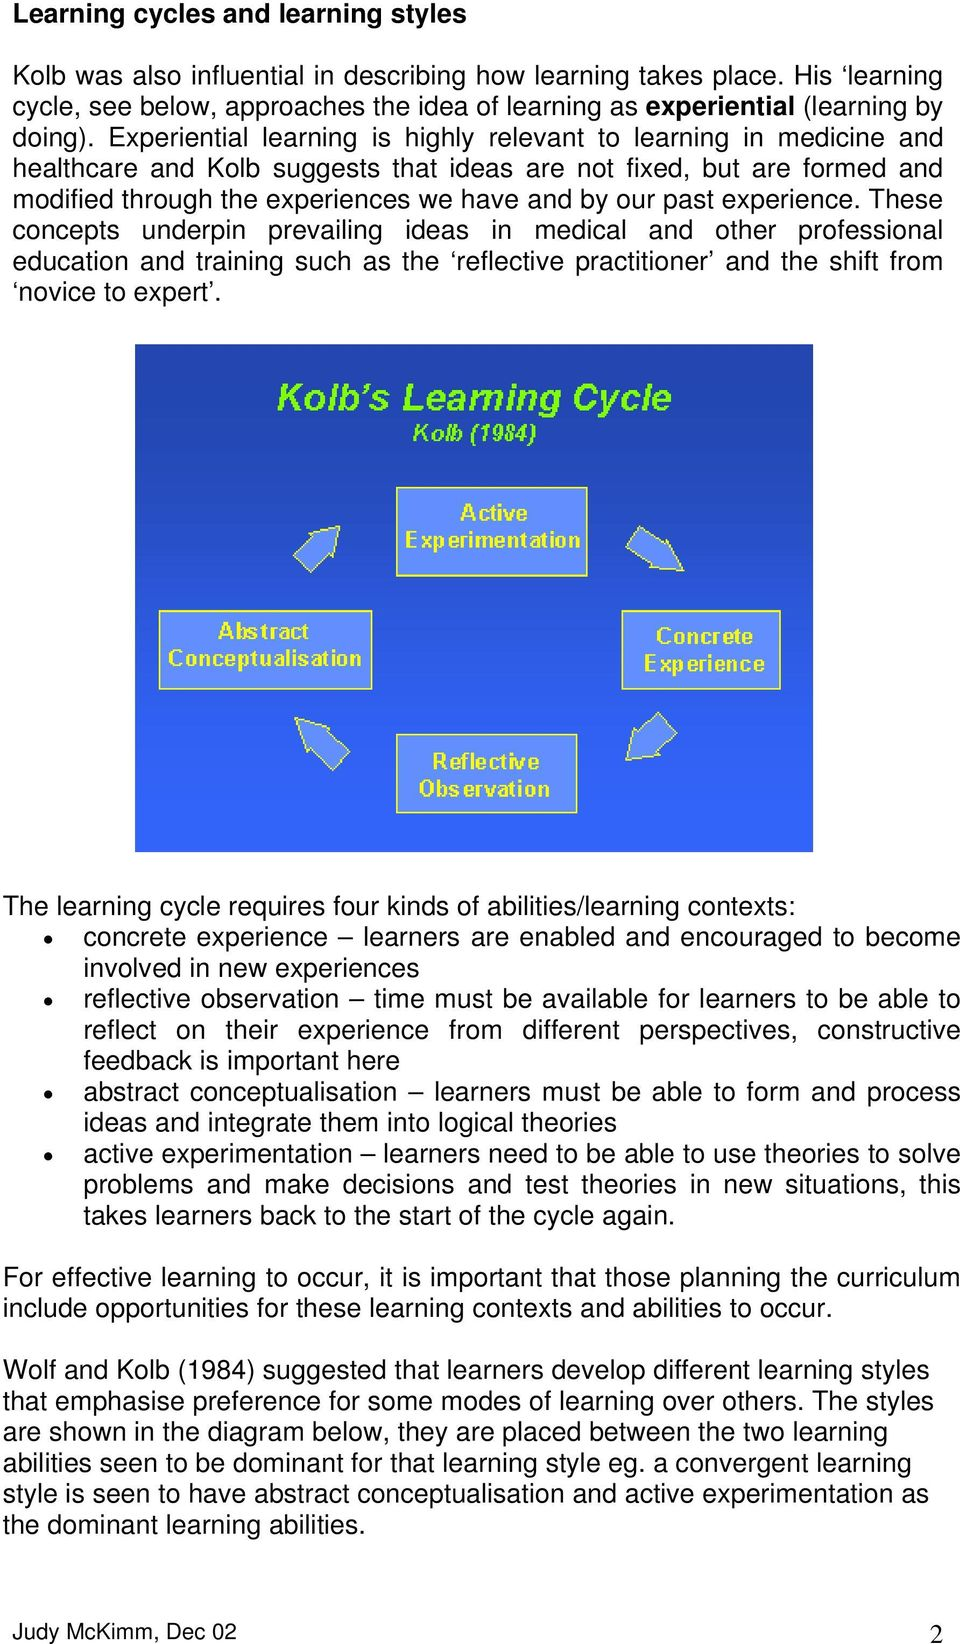 Experiential learning is highly relevant to learning in medicine and healthcare and Kolb suggests that ideas are not fixed, but are formed and modified through the experiences we have and by our past